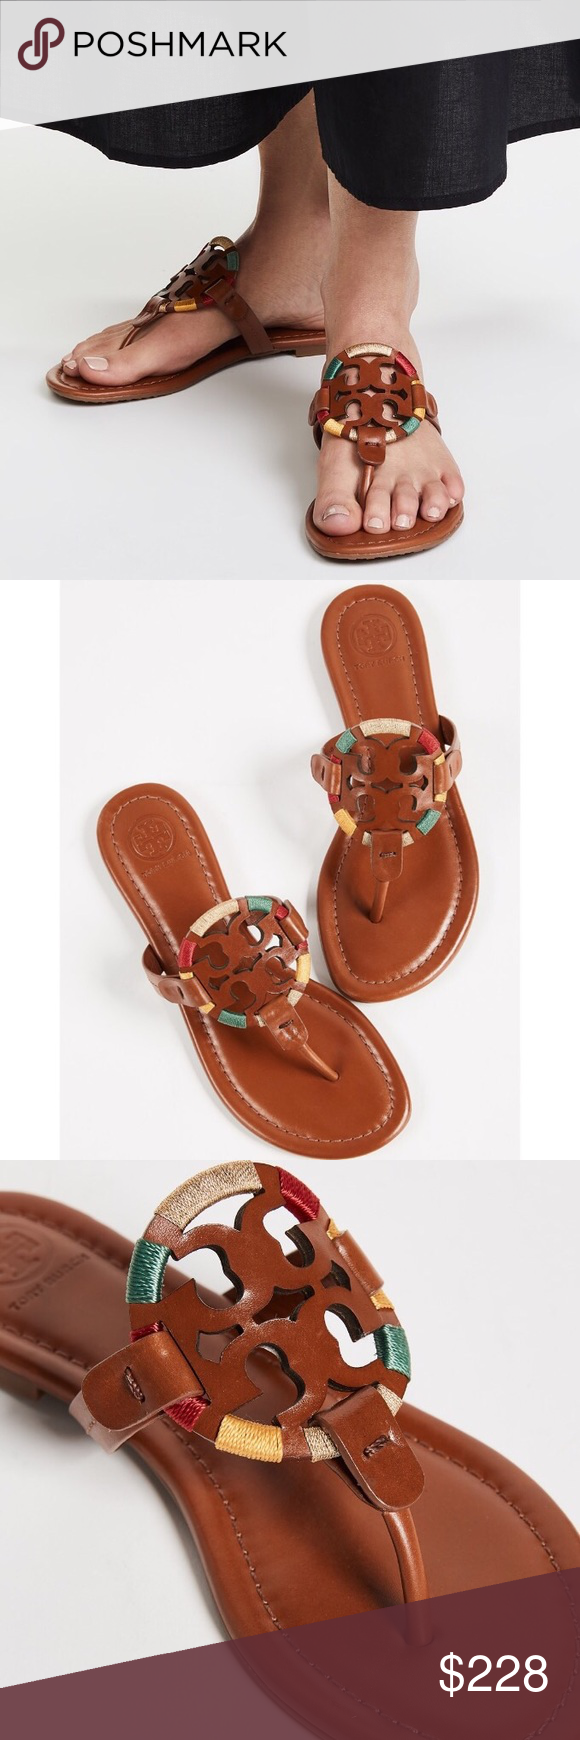 0a7c3471d2a9 Tory Burch ❉ Embroidered Miller Sandals ❉ Tory Burch Embroidered Miller  Sandals in